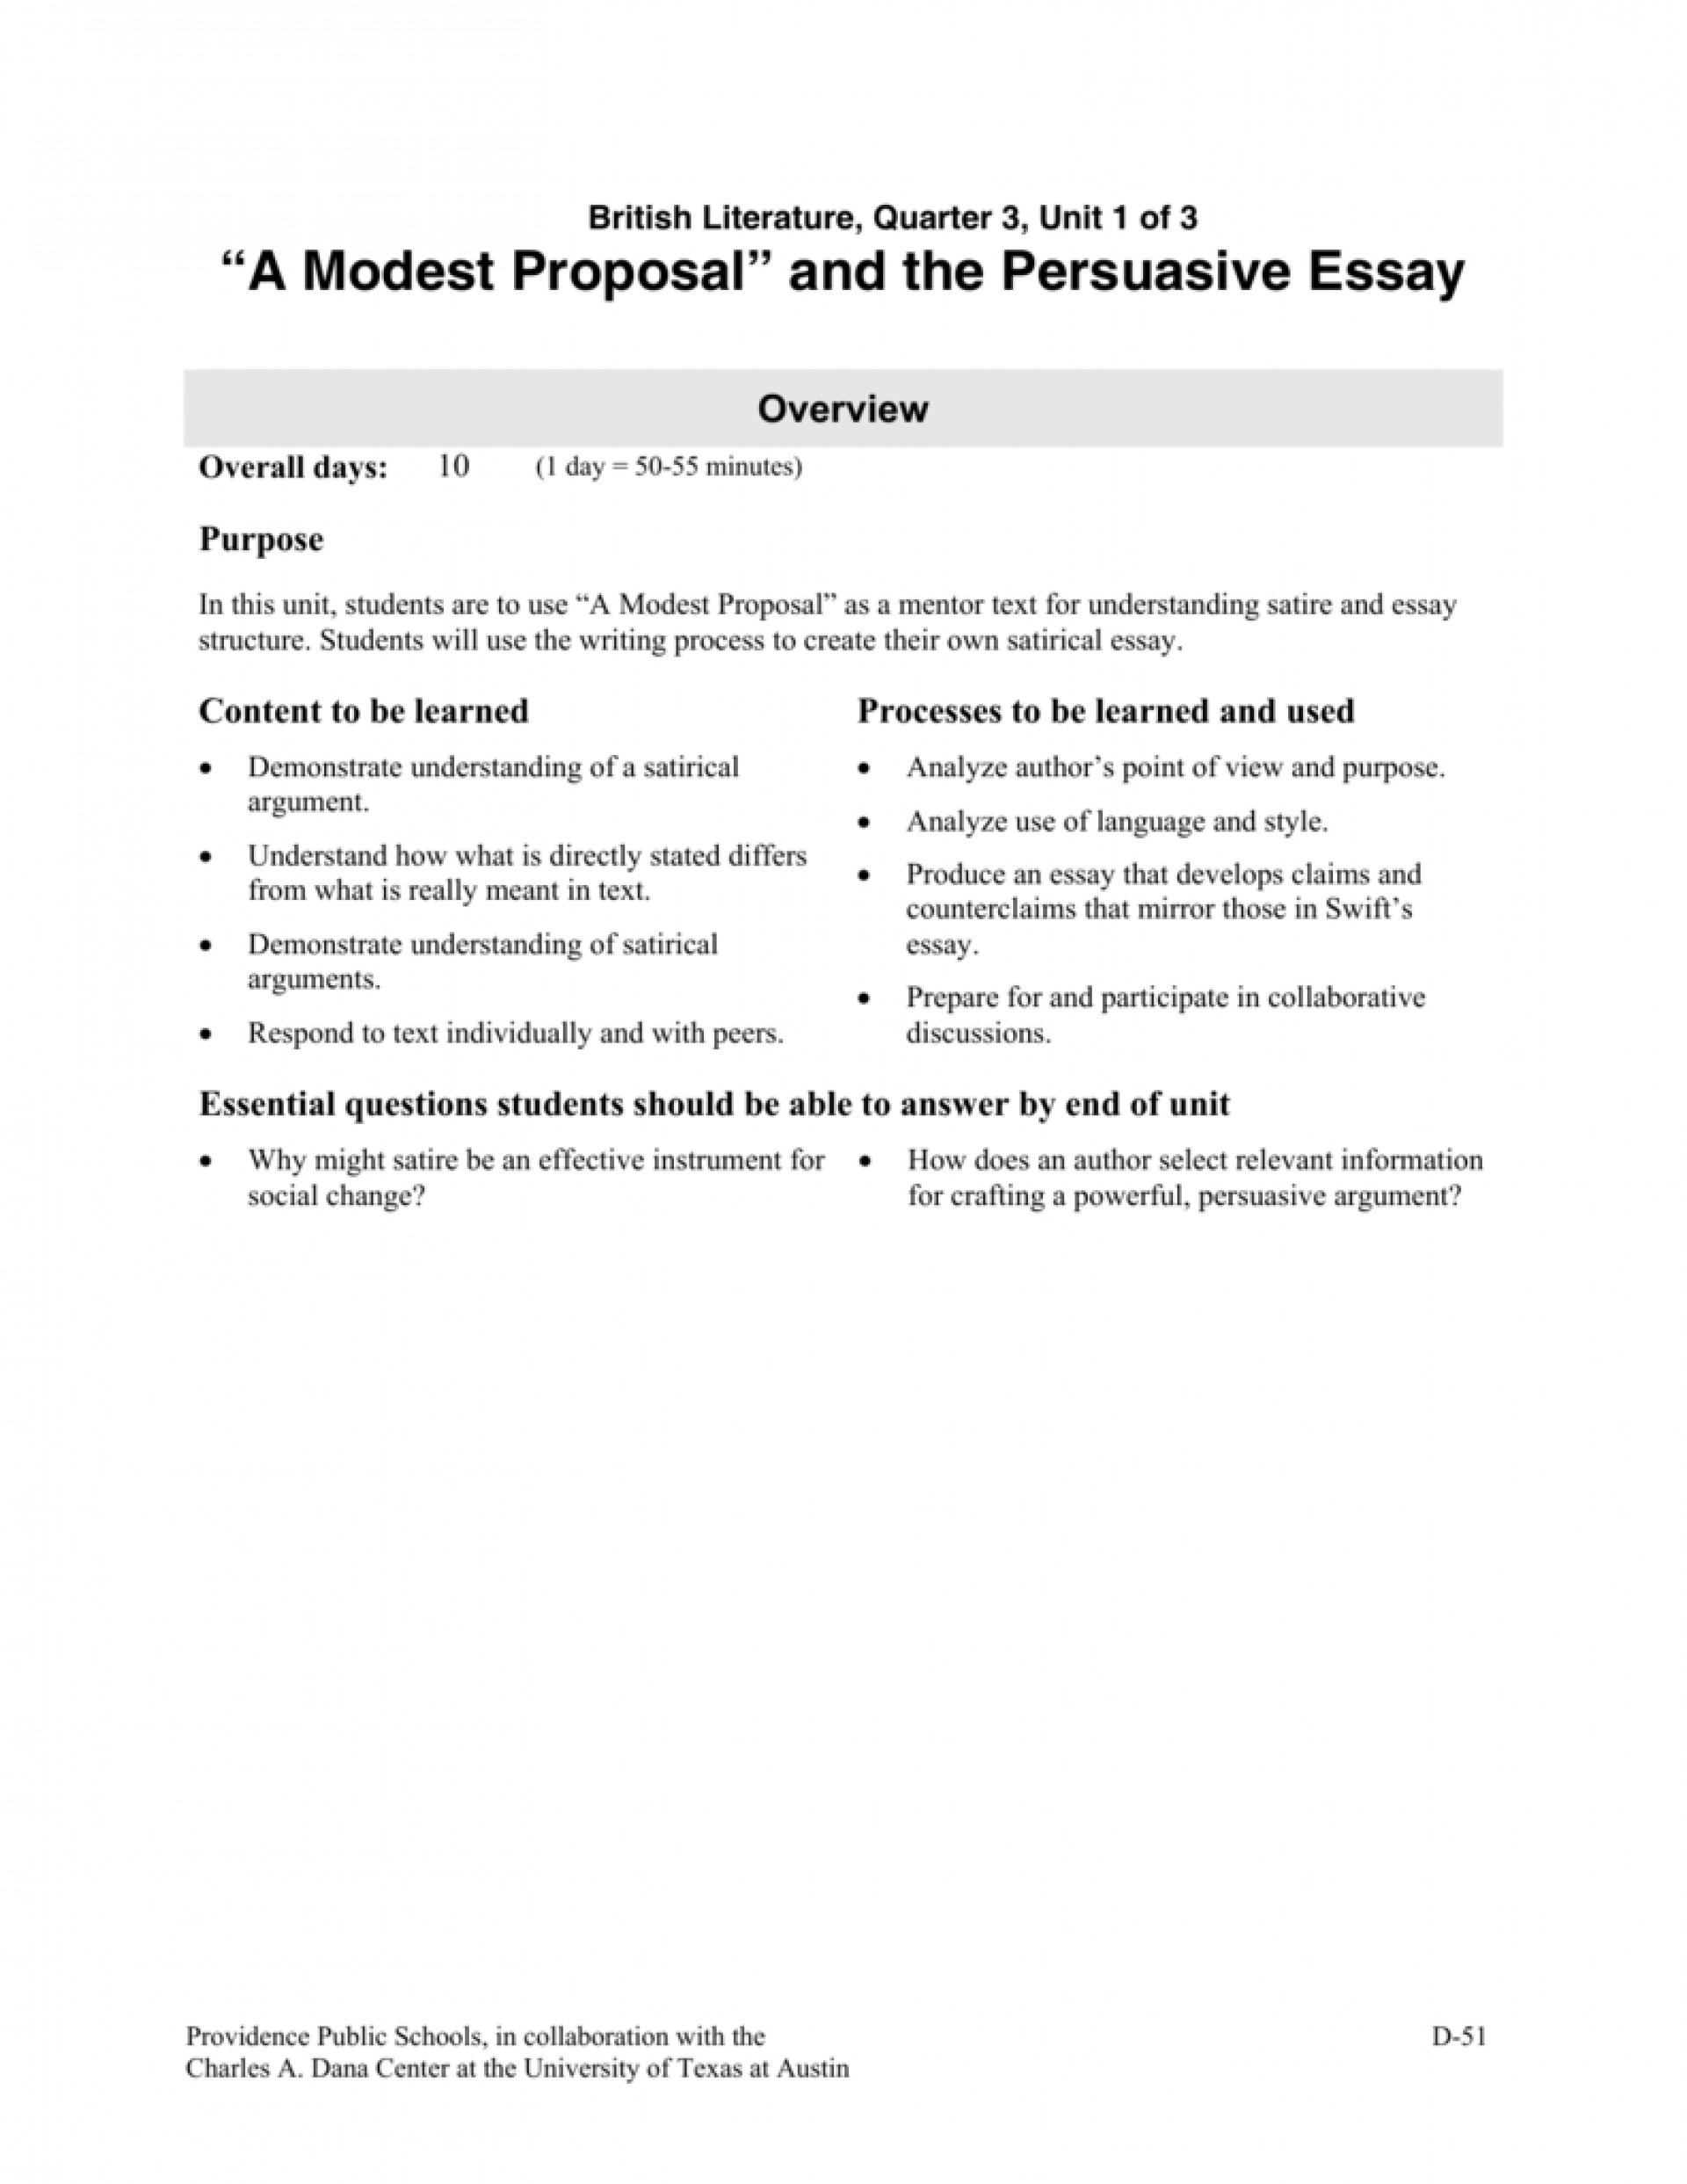 008 Modest Proposal Essay Example 008803036 1 Exceptional Conclusion Topics Prompts 1920